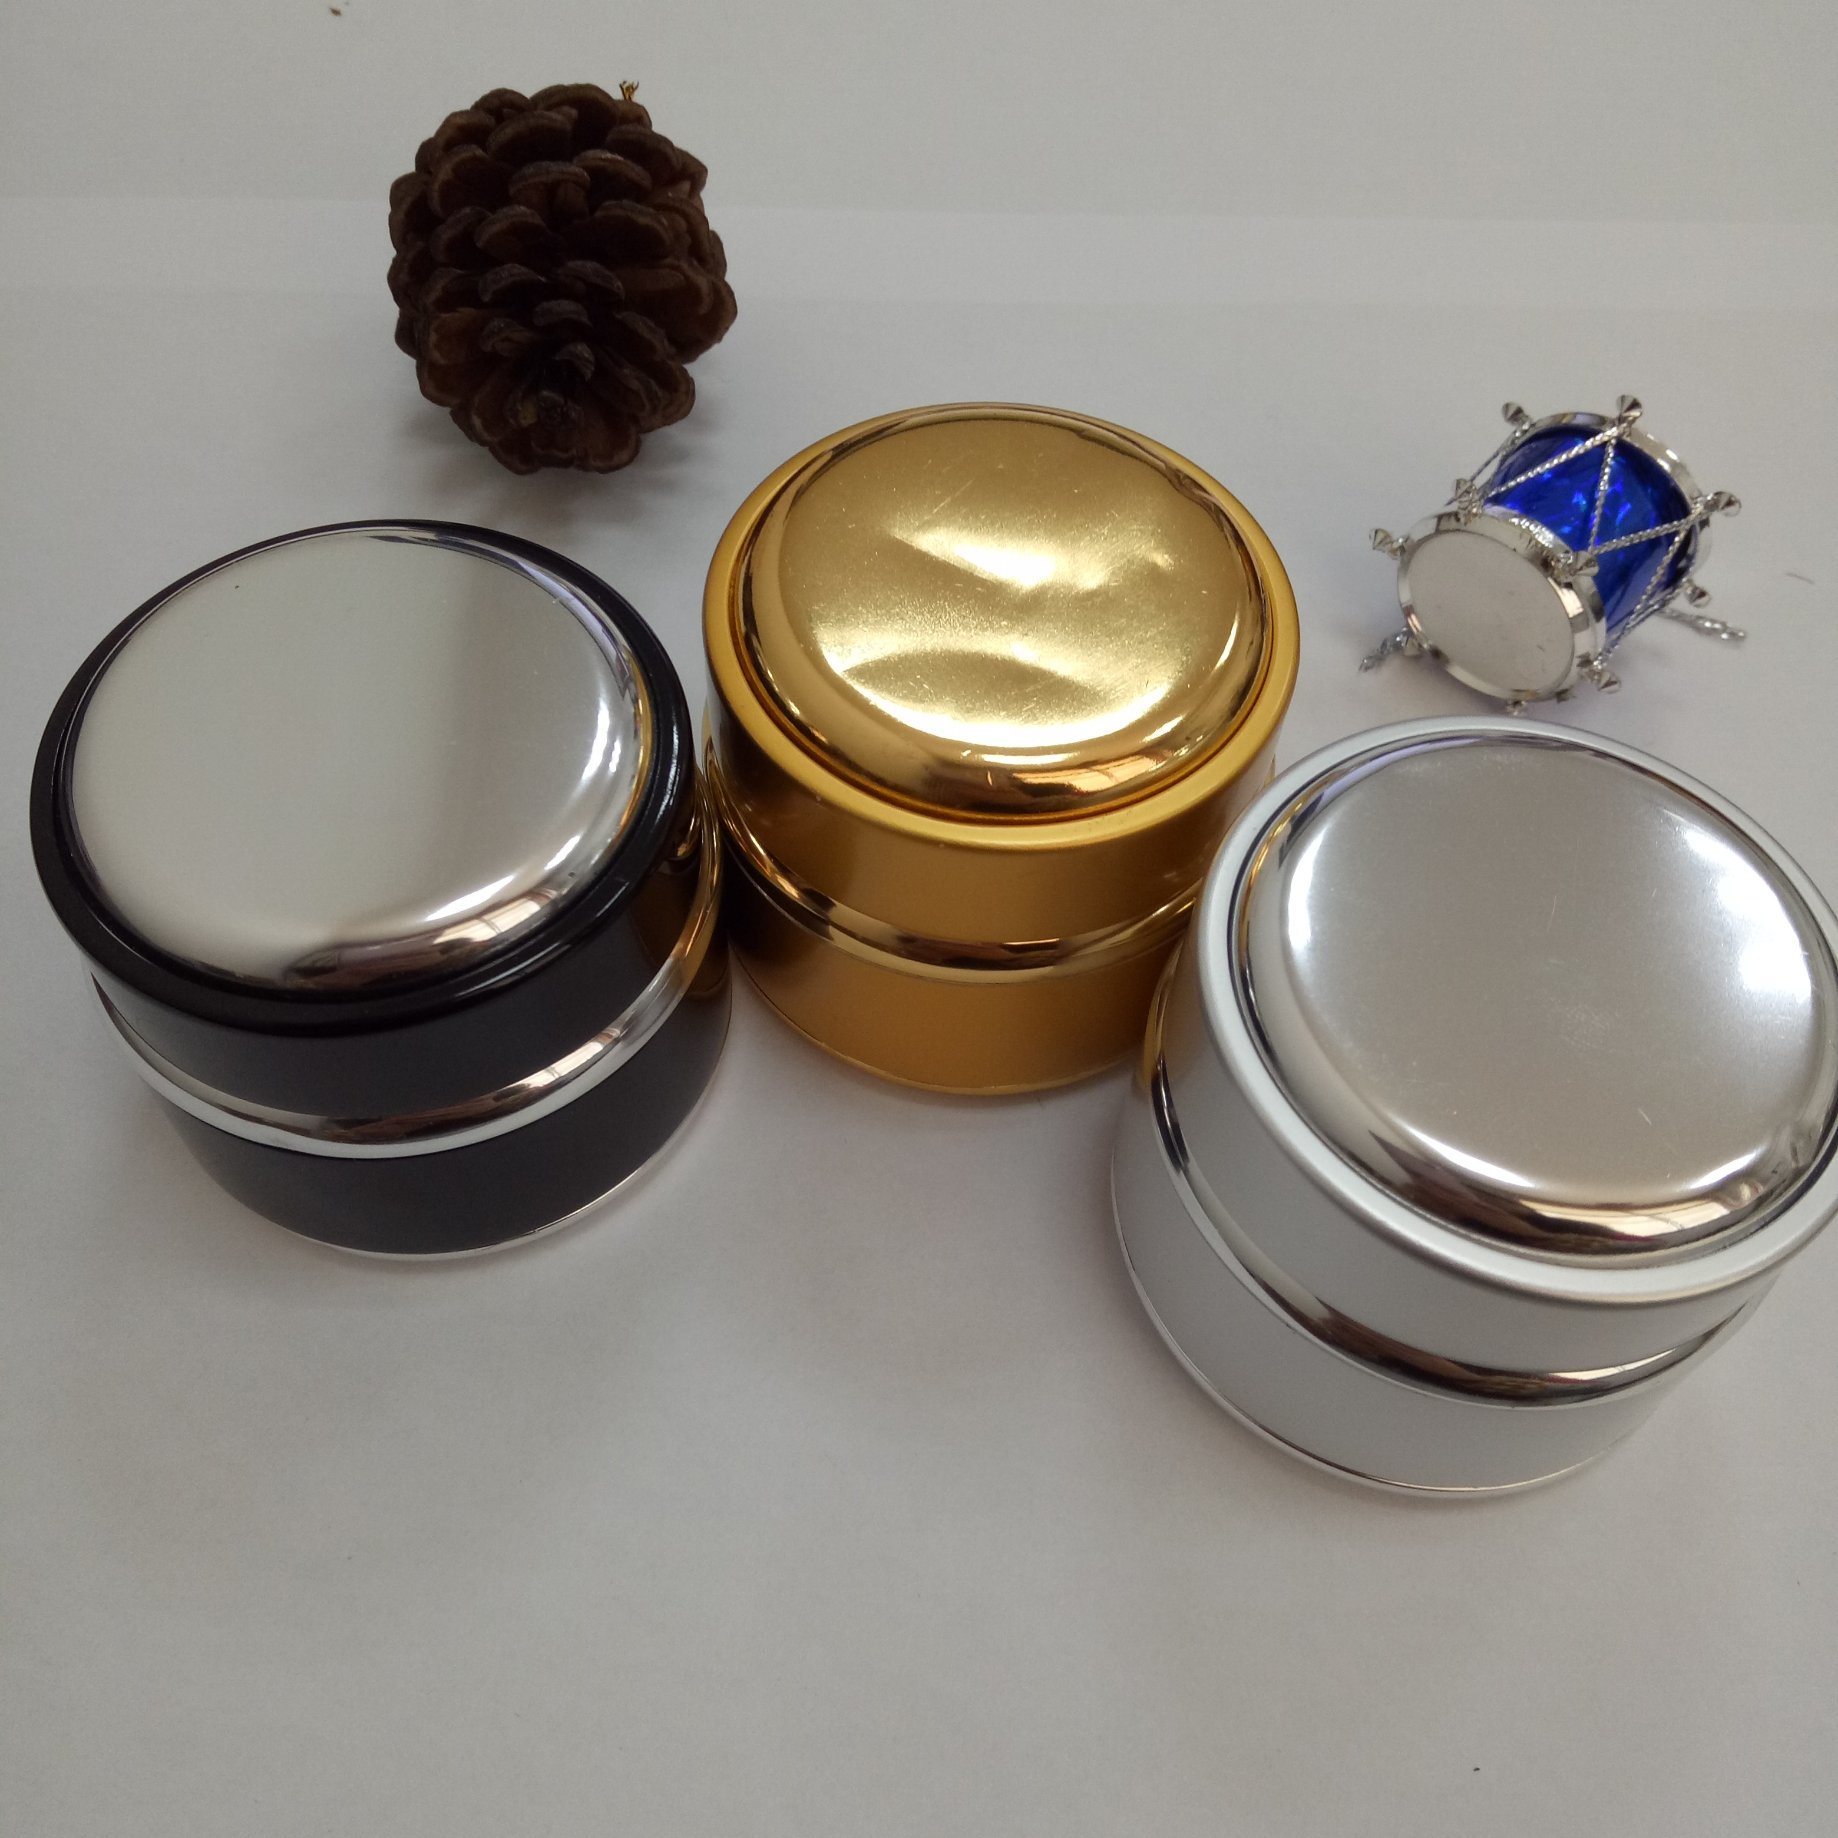 Gel Cream Packing Aluminum Sheathed Glass Jars